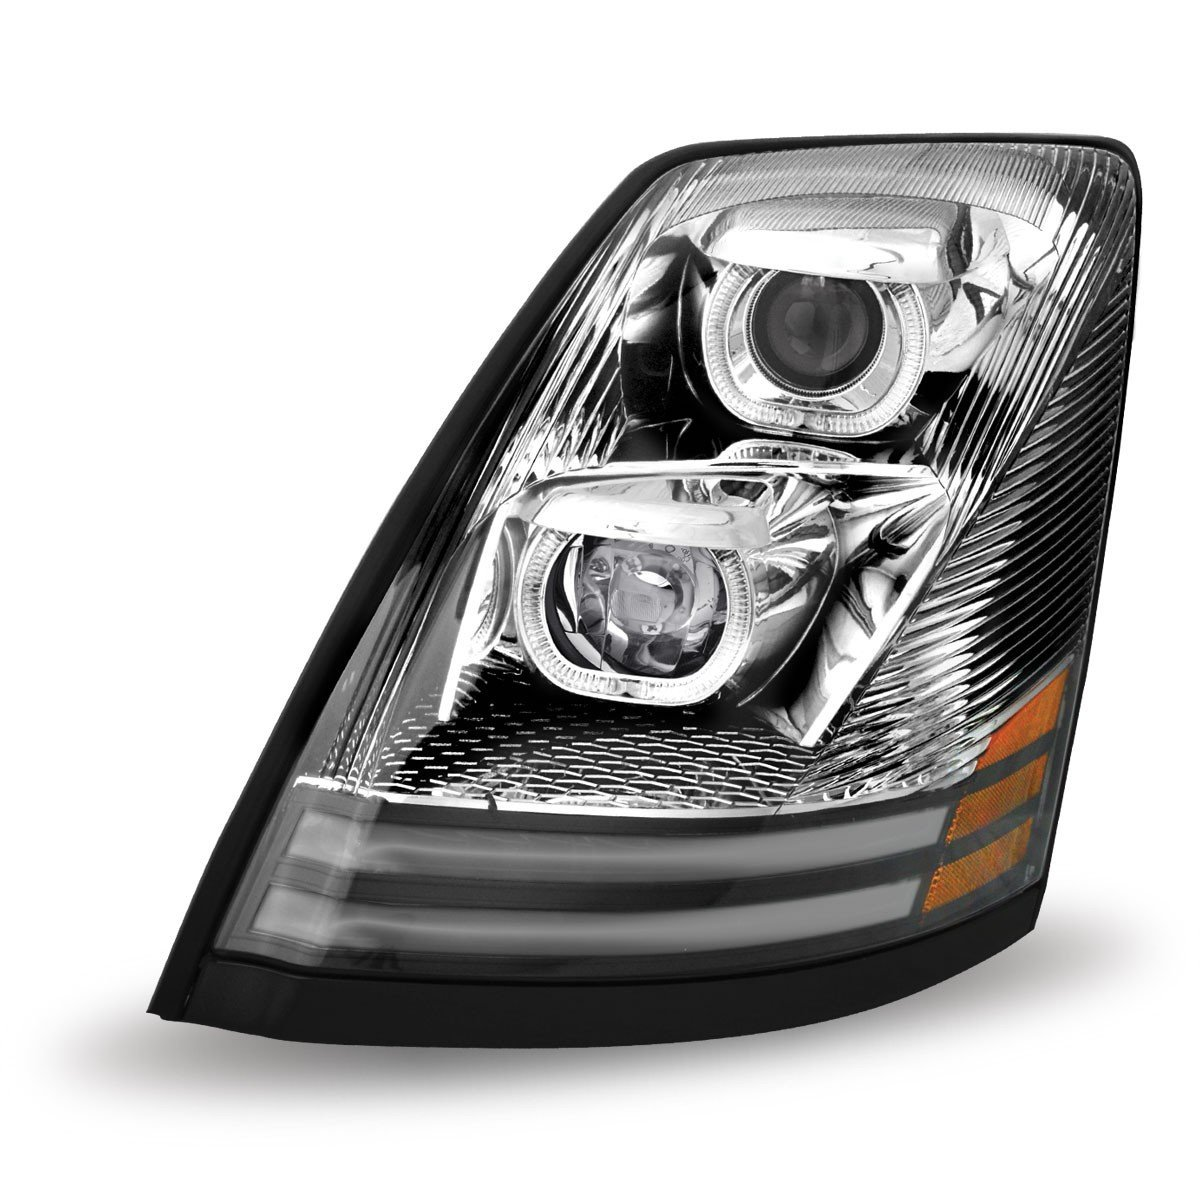 Volvo VNL LED Projector Headlight Assembly TLED-H17